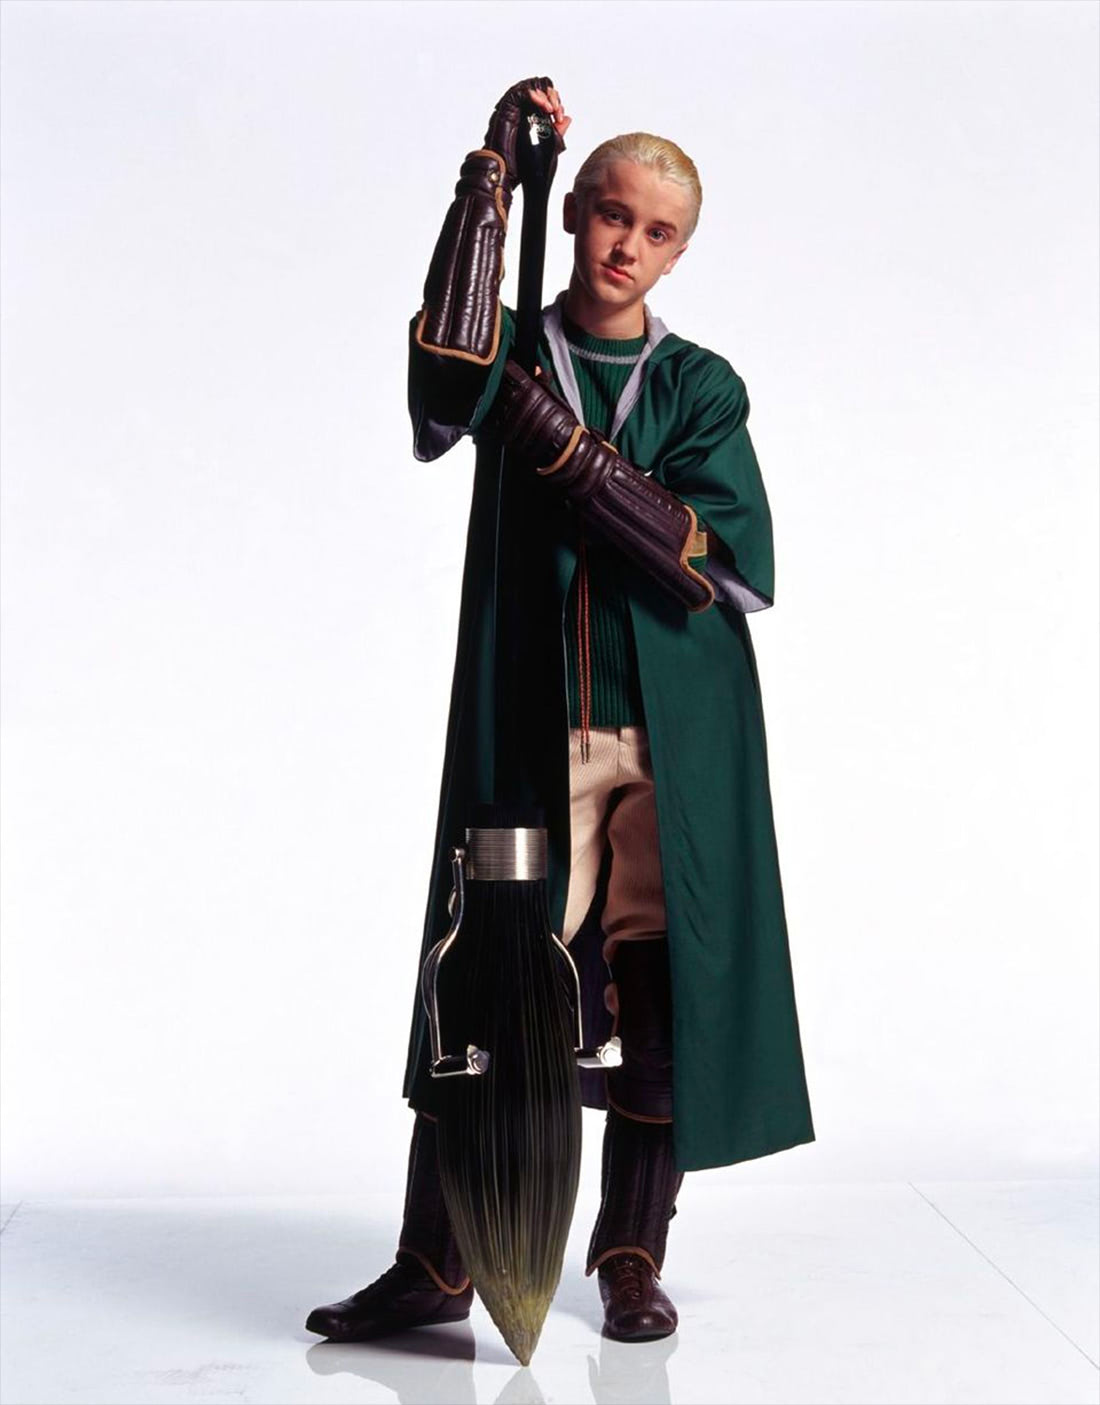 Portrait of Draco Malfoy in Quidditch robes